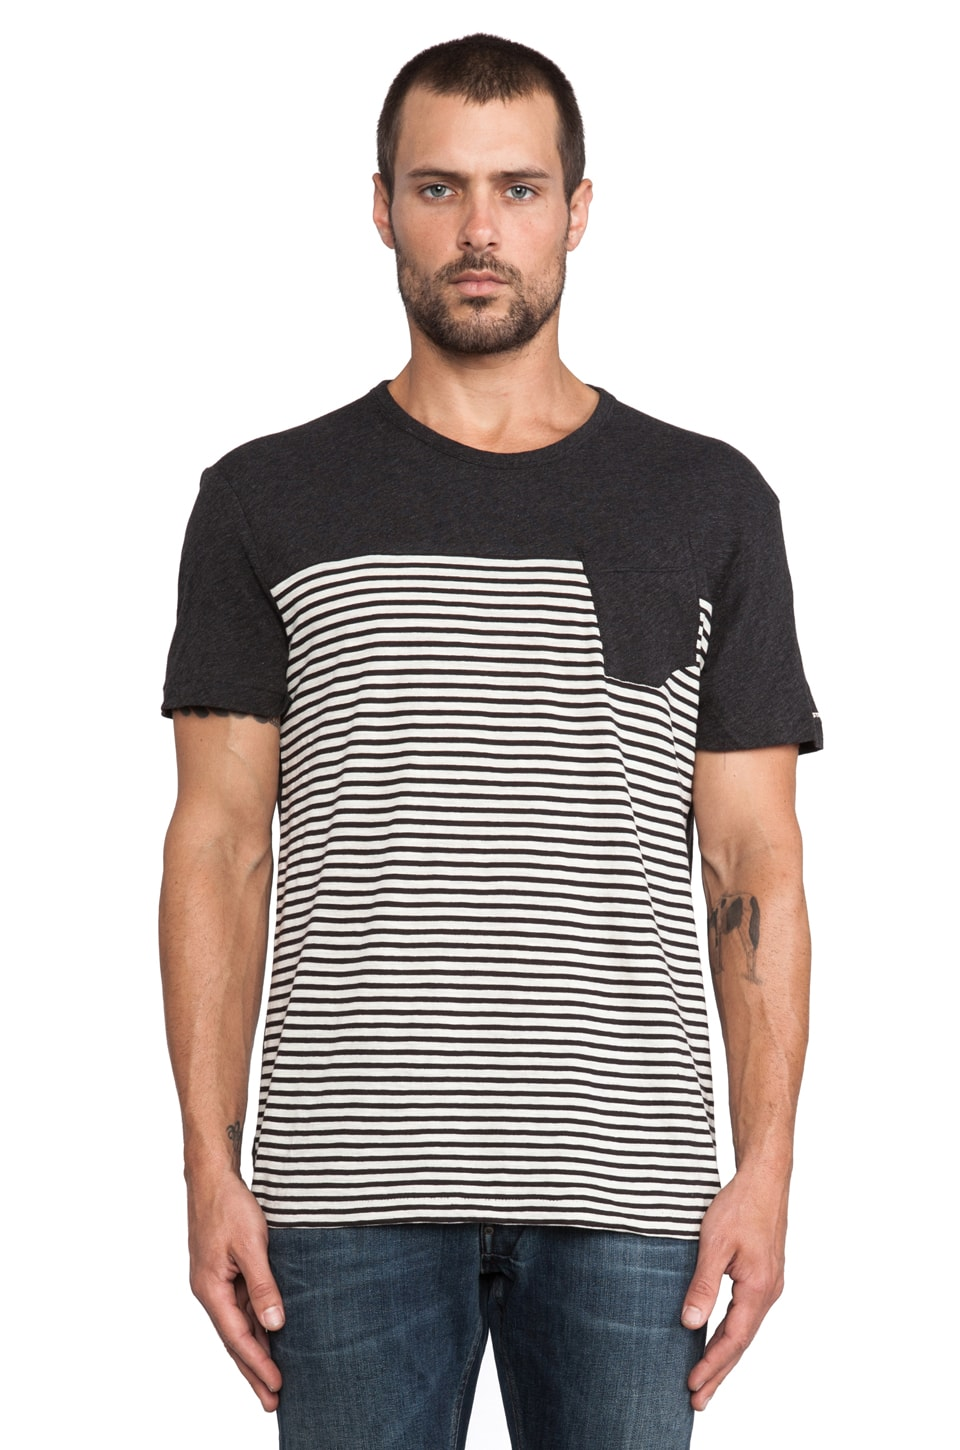 G-Star Django Striped Tee in Black Heather